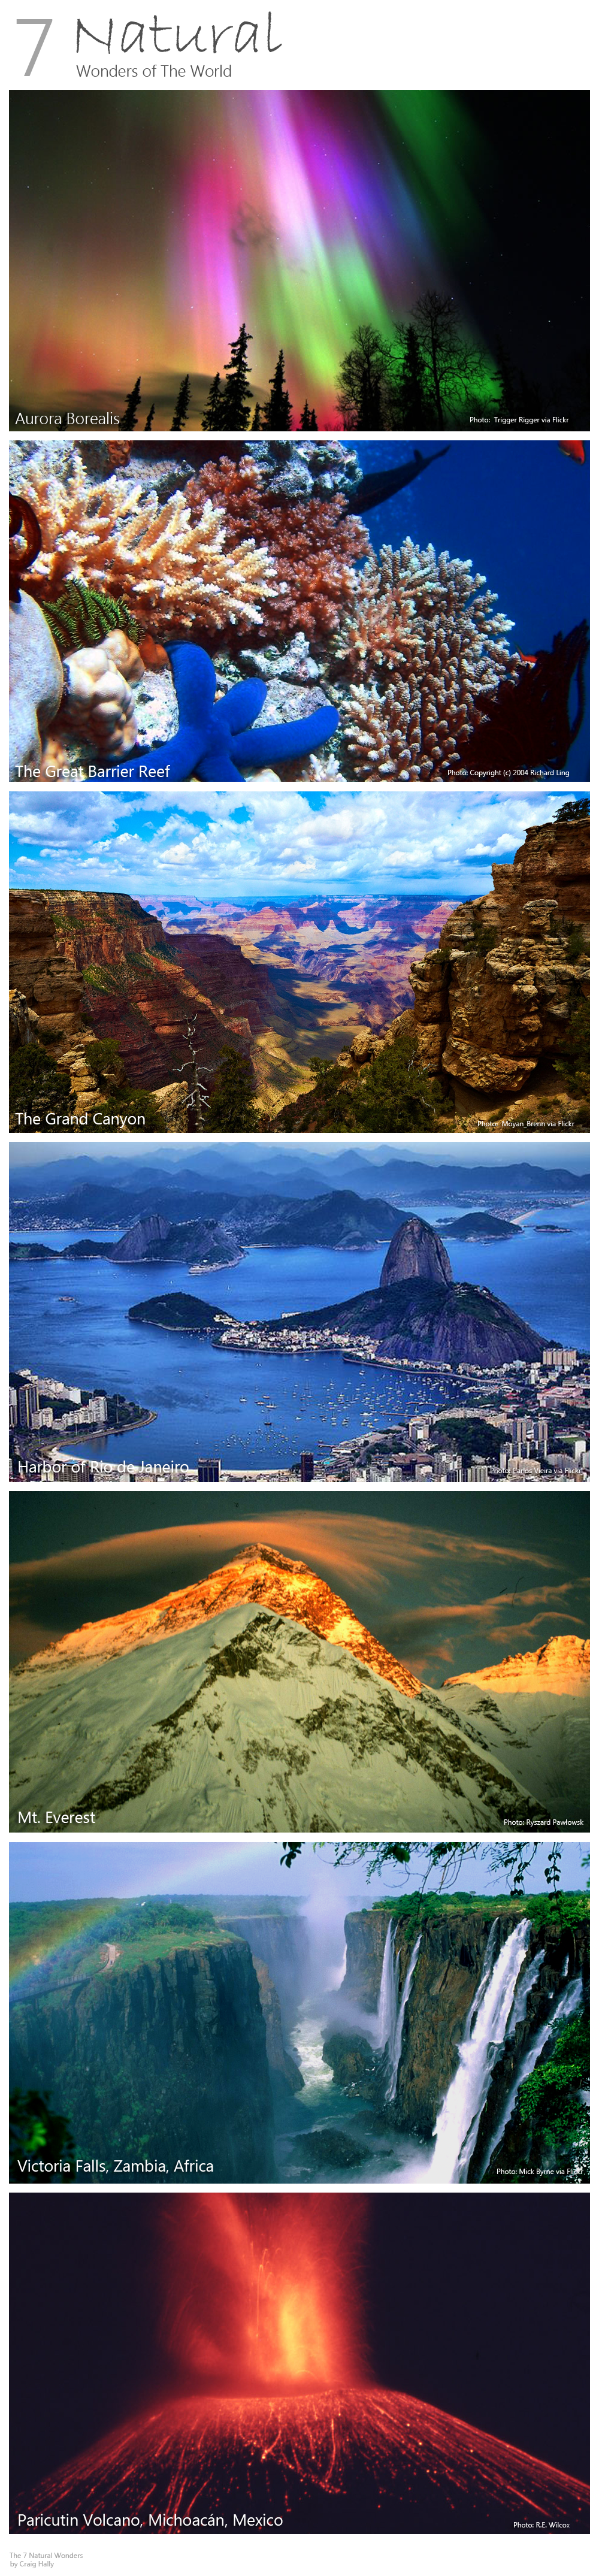 The Seven Natural Wonders Of The World List 7 Natural Wonders Wonders Of The World 7 Natural Wonders Travel